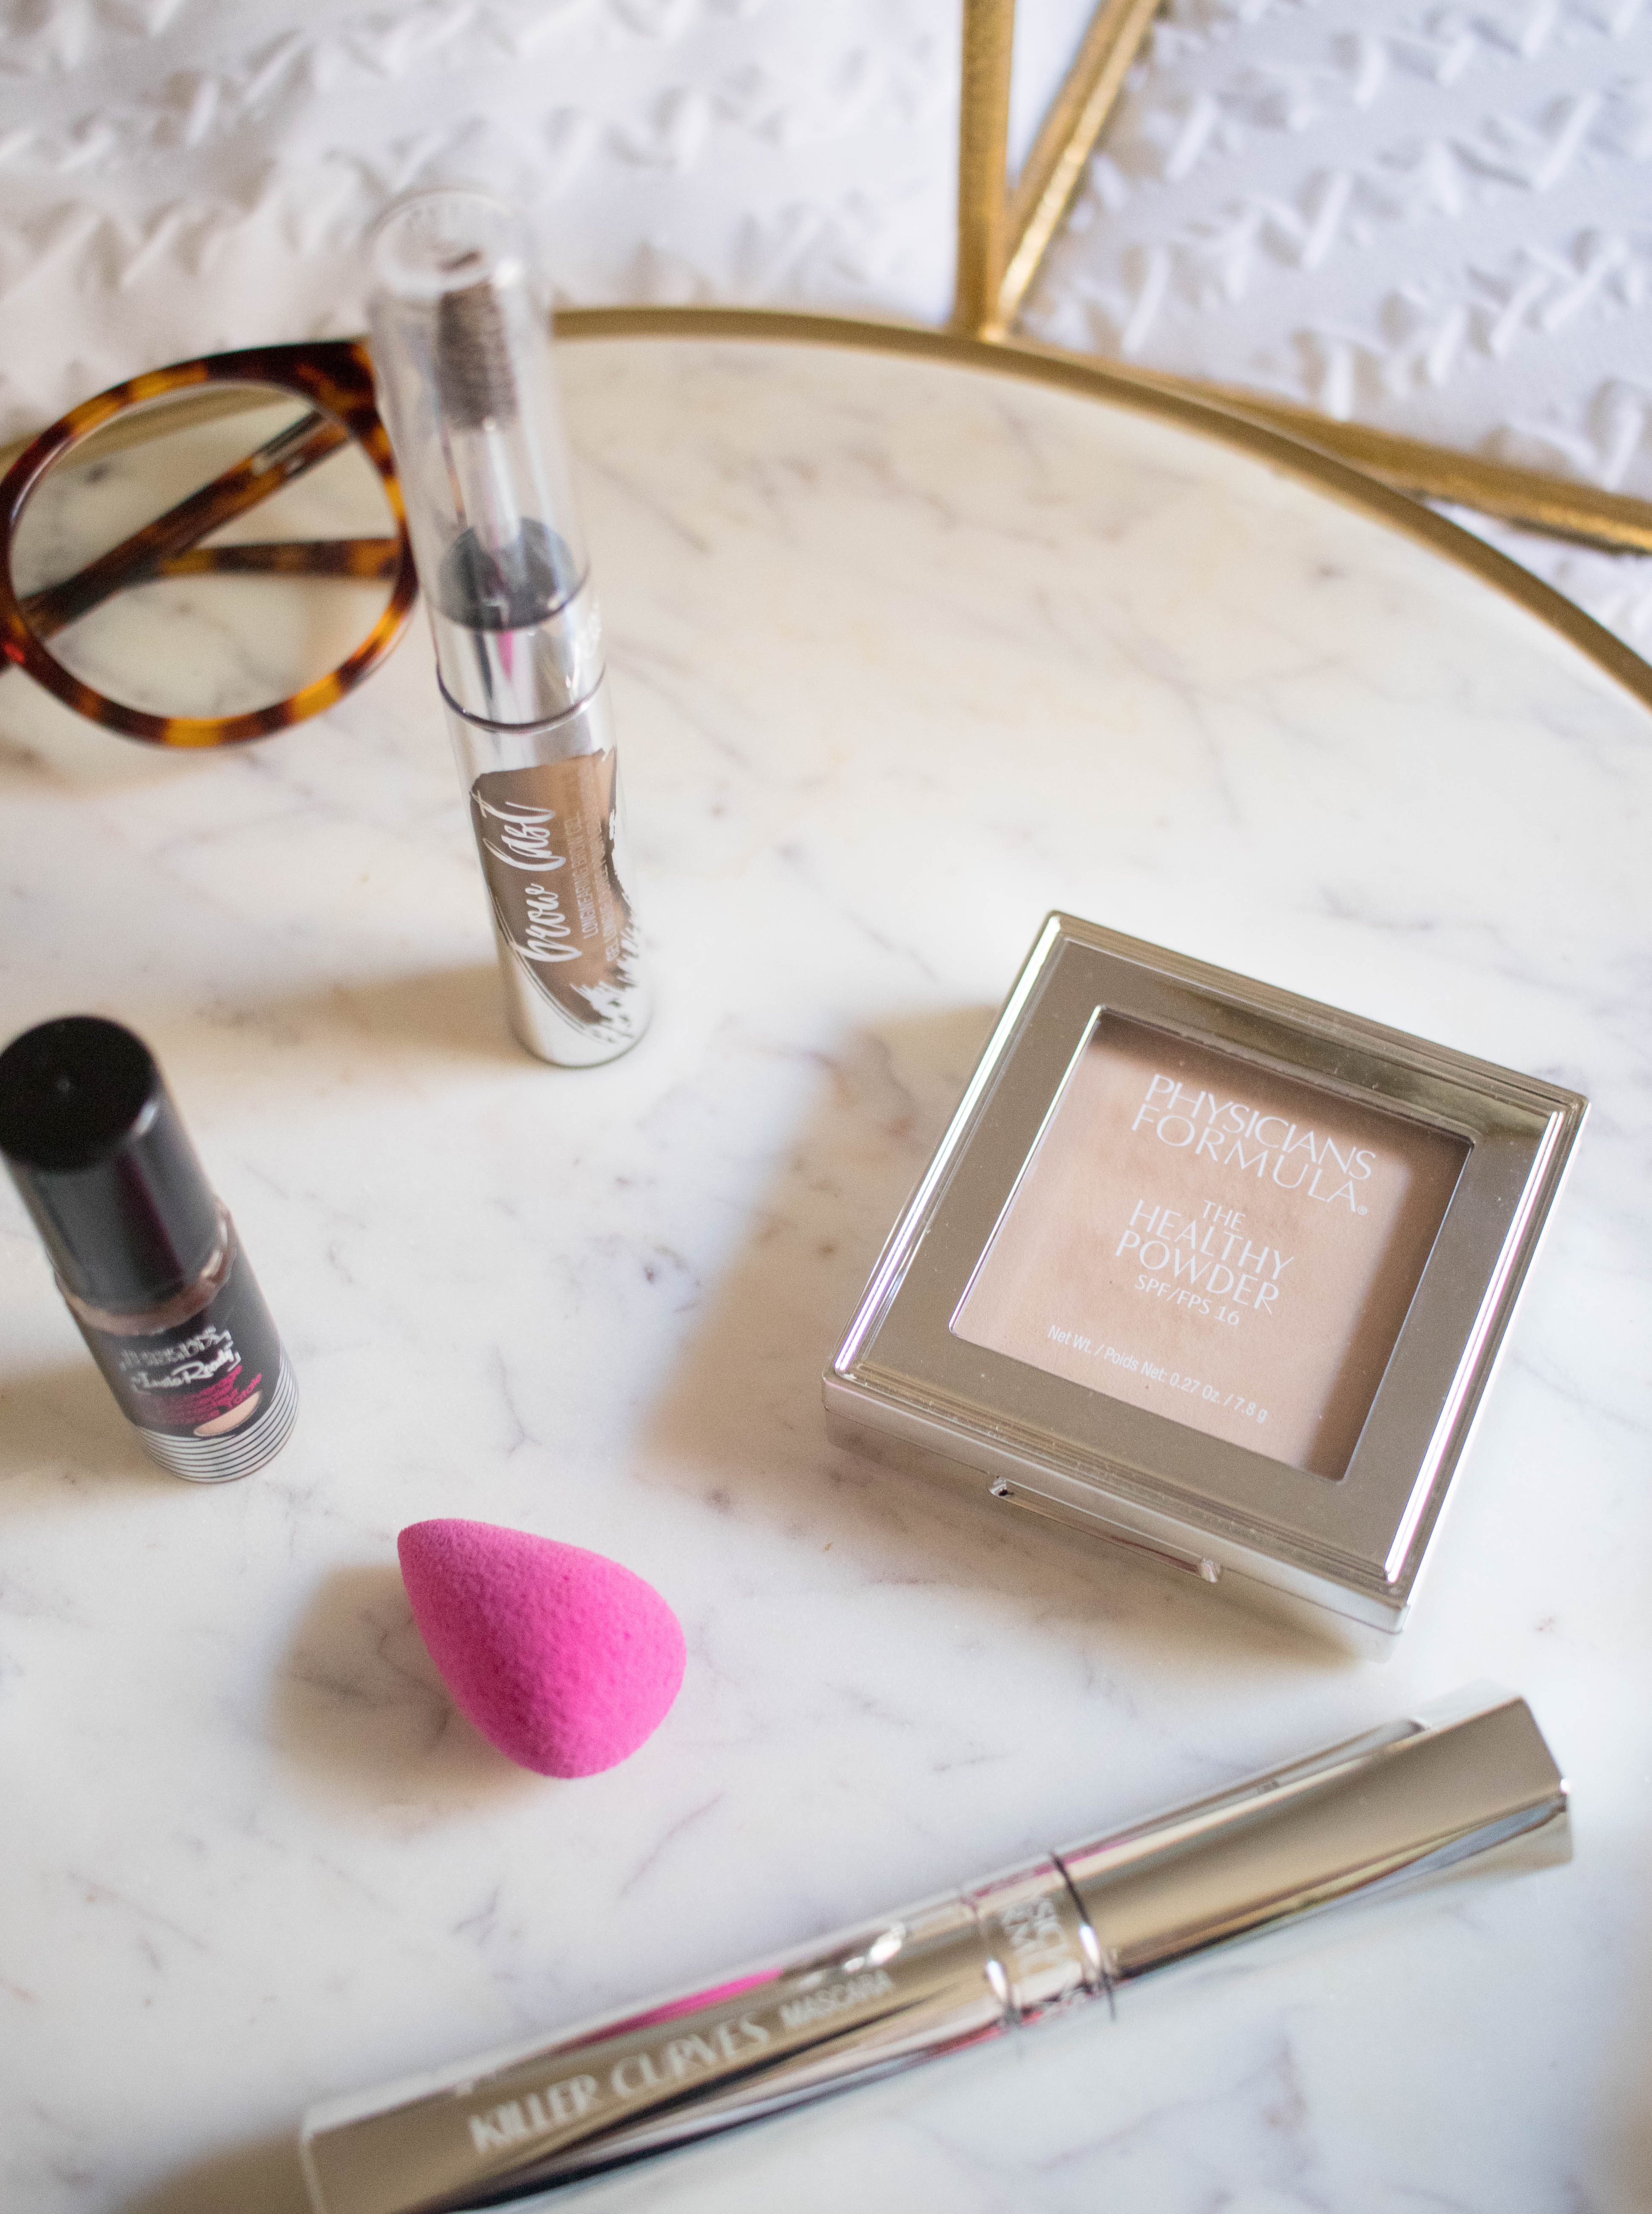 physicians formula 5 minute makeup routine #physiciansformula #thehealthypowder #easymakeuproutine